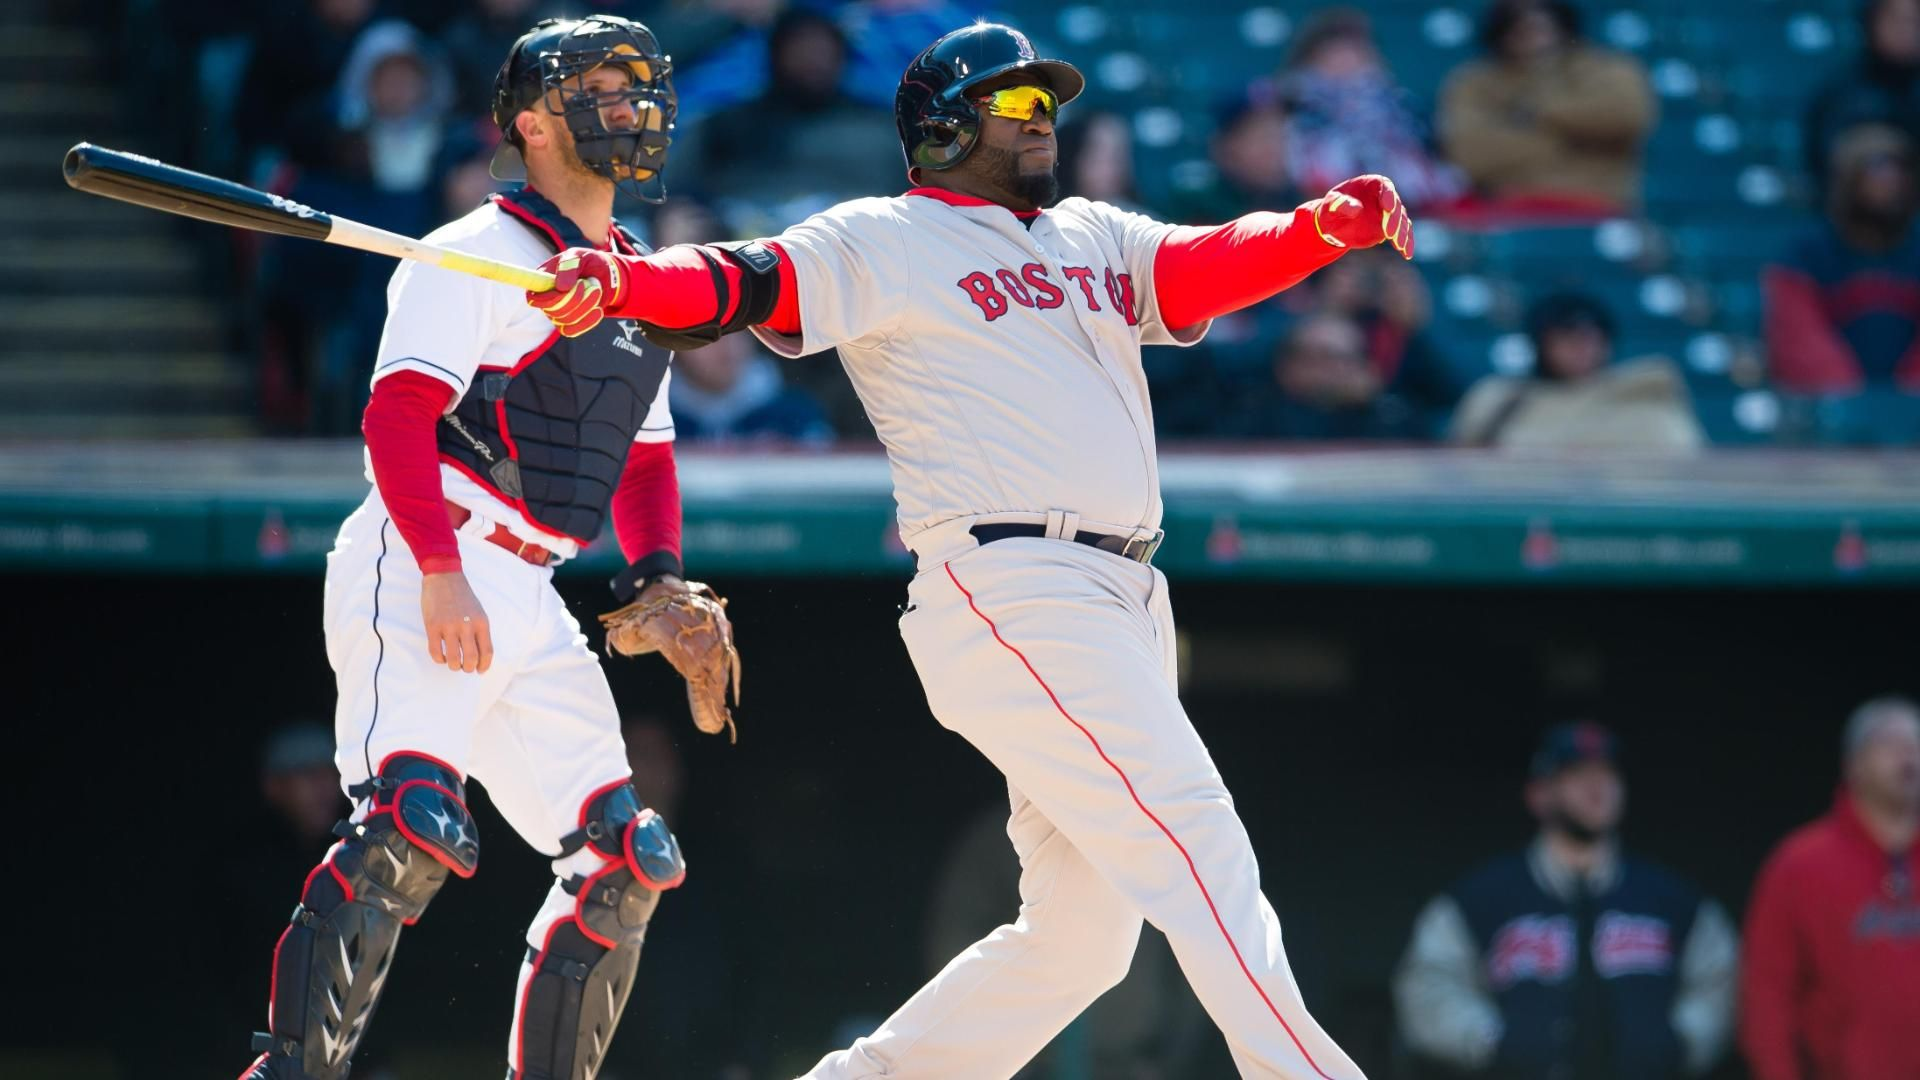 David Ortiz of Boston Red Sox hits 5th Opening Day HR